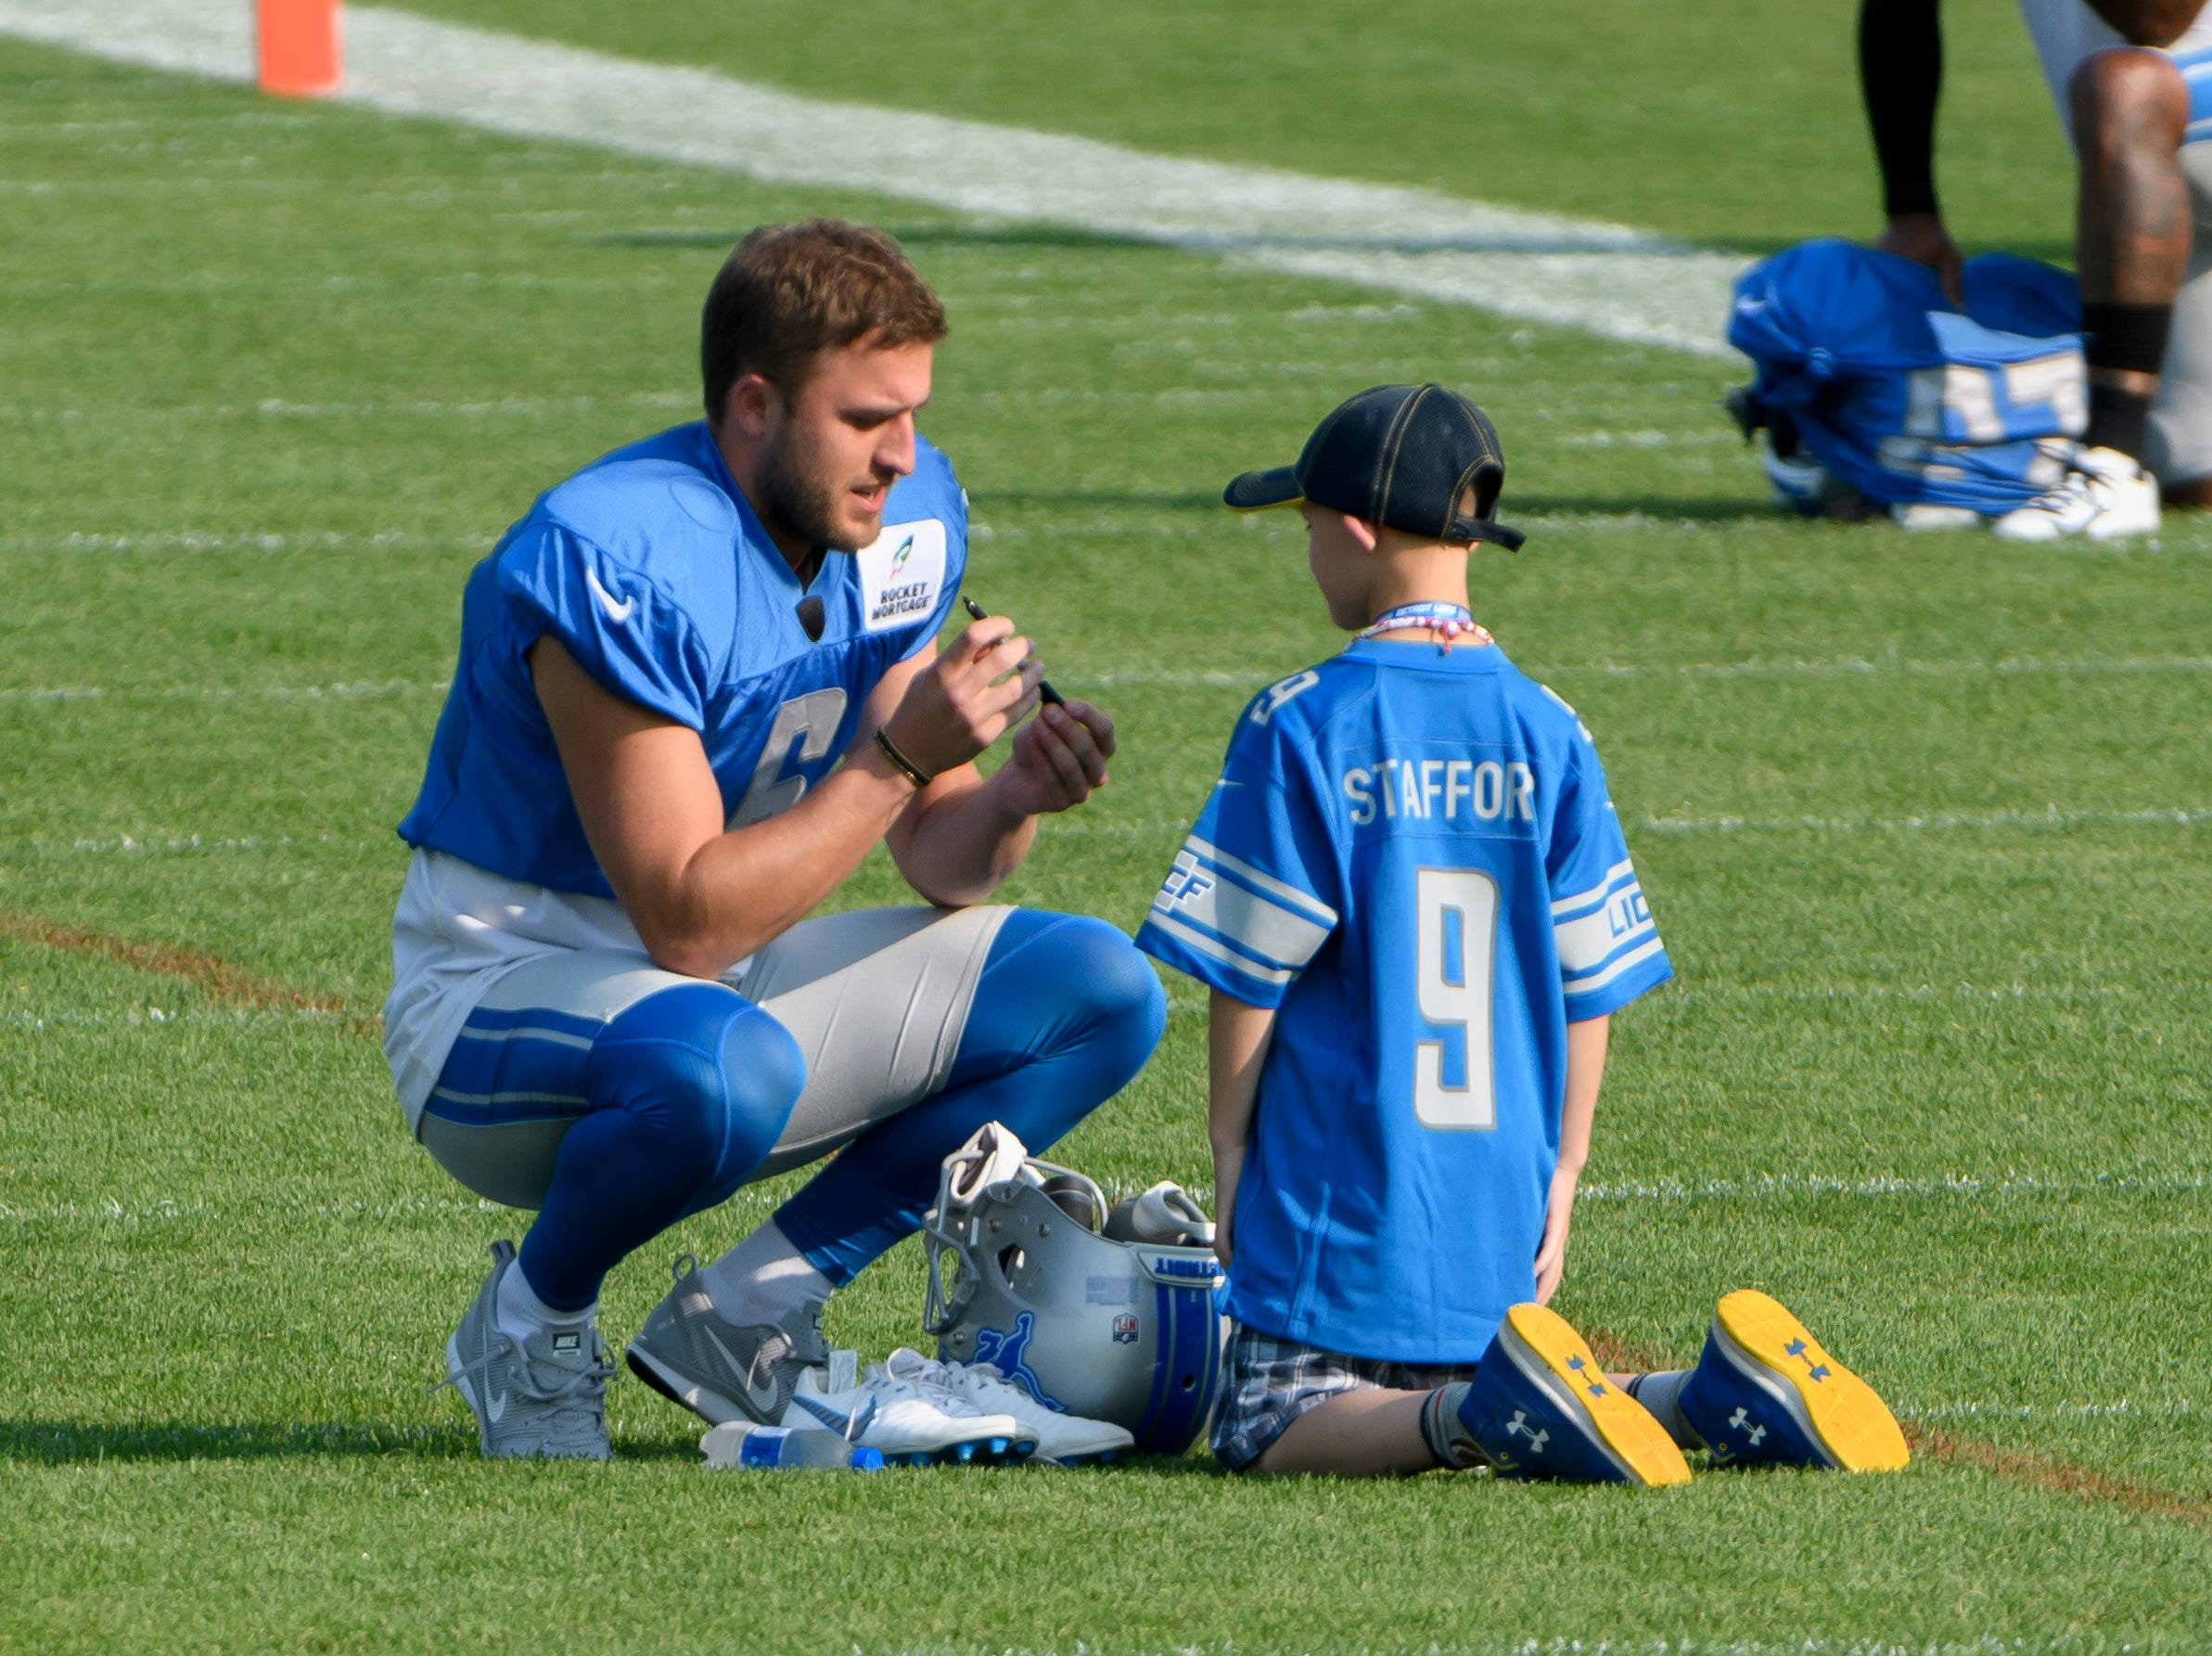 Lions punter Sam Martin signs an autograph for a fan before the start of practice.